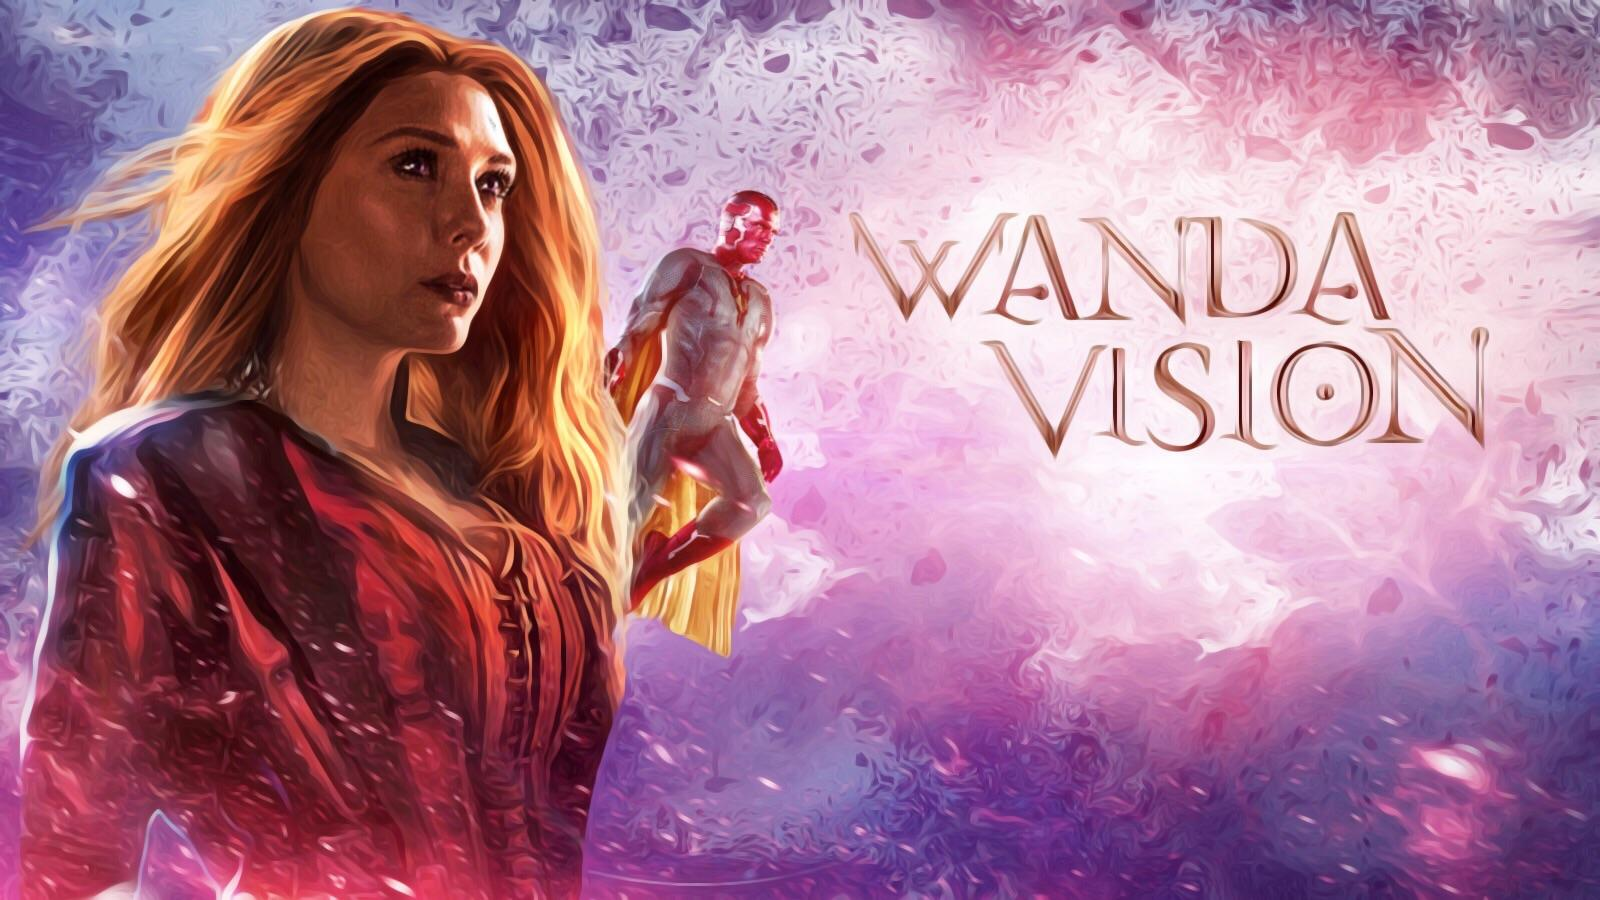 WandaVision Release Date Has Officially Been Changed To 2020